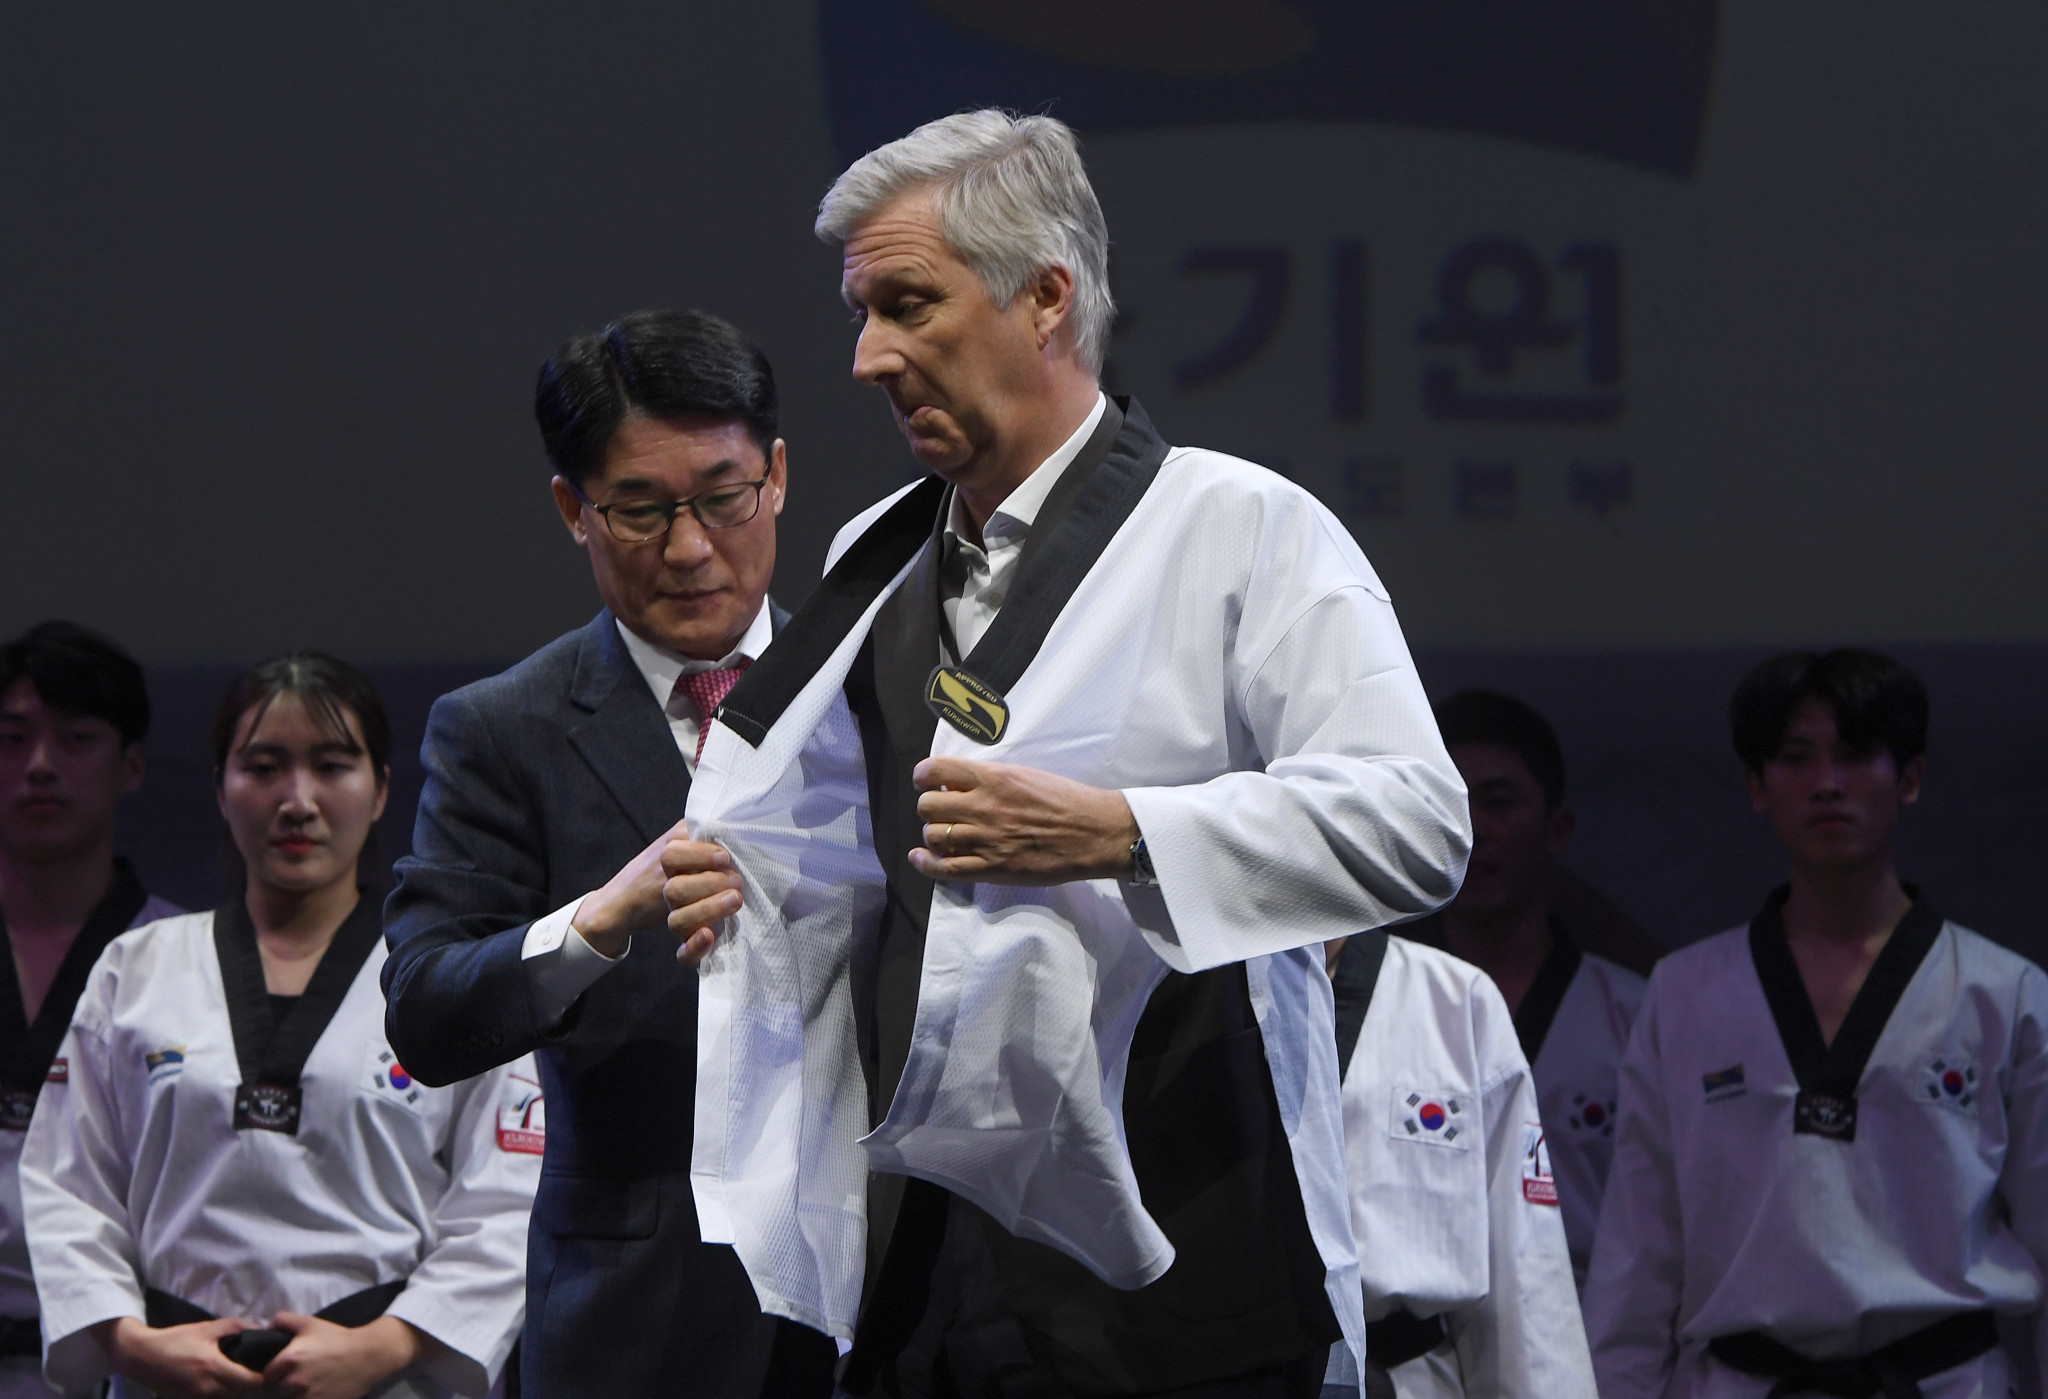 King of Belgium visits World Taekwondo headquarters during state visit to South Korea